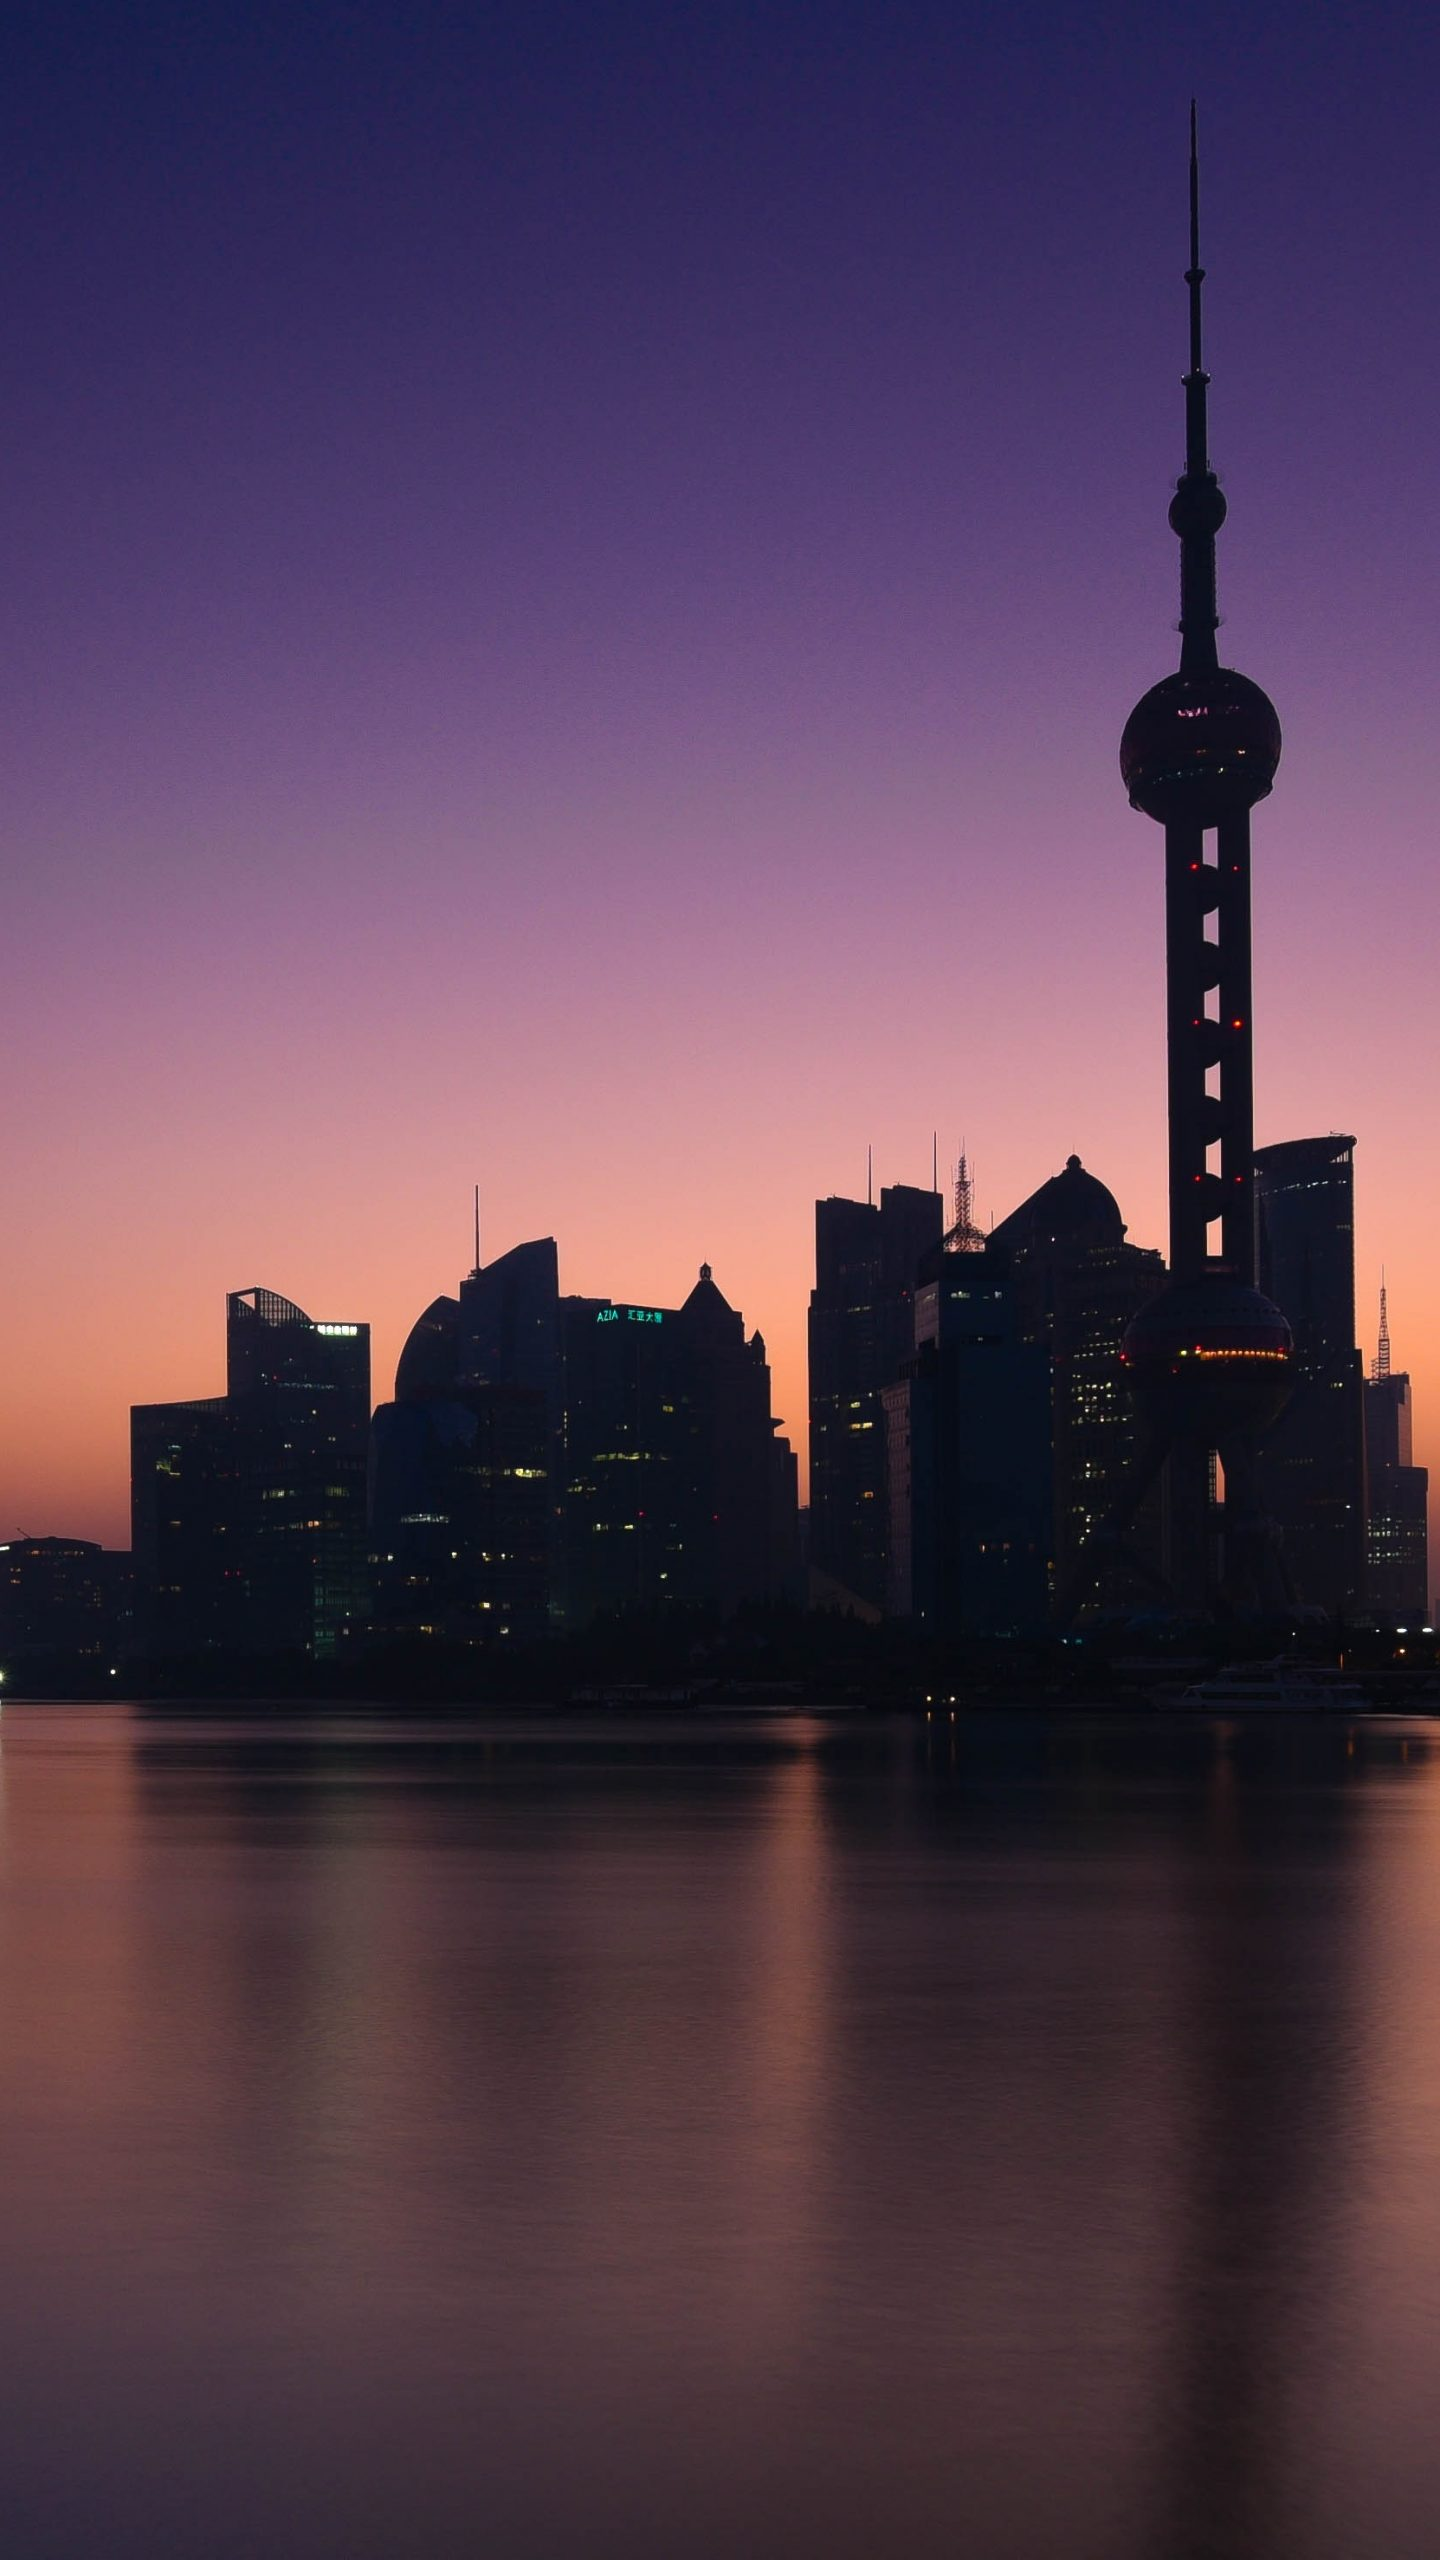 Ios 11 Hd Wallpaper Shanghai At Sunrise China 5k Uhd Wallpaper Wallpapers Gg